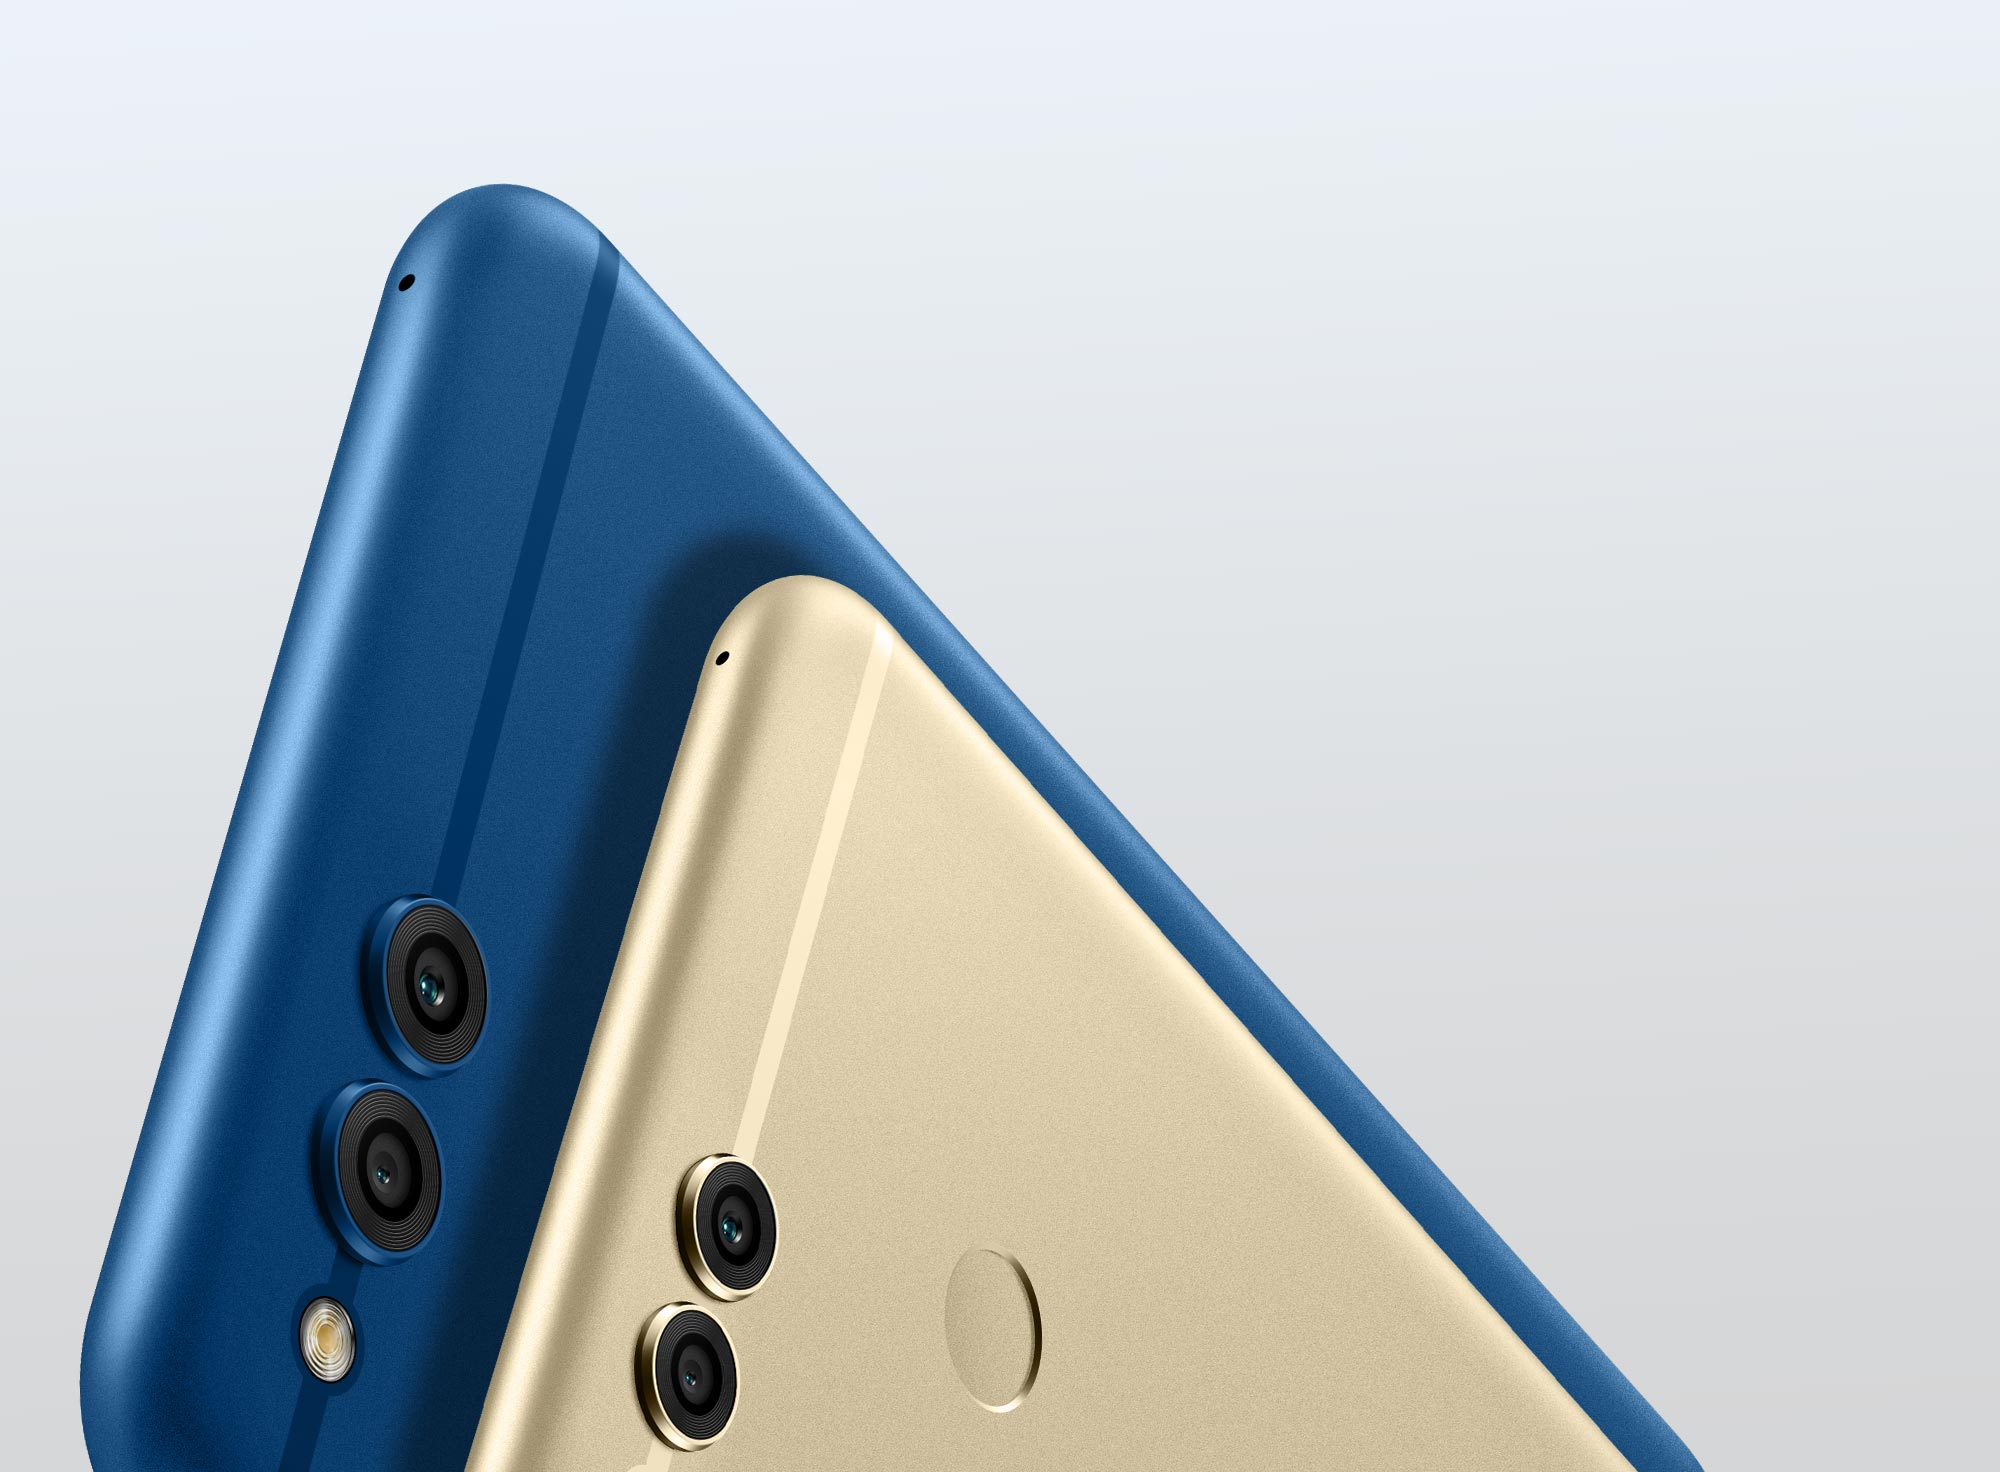 Honor-7X-rear-panel-1